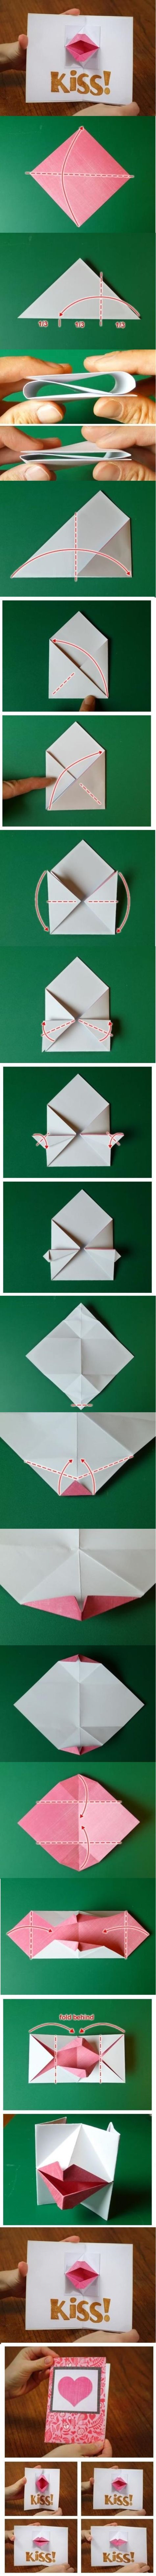 212 best Pop Up Cards images on Pinterest